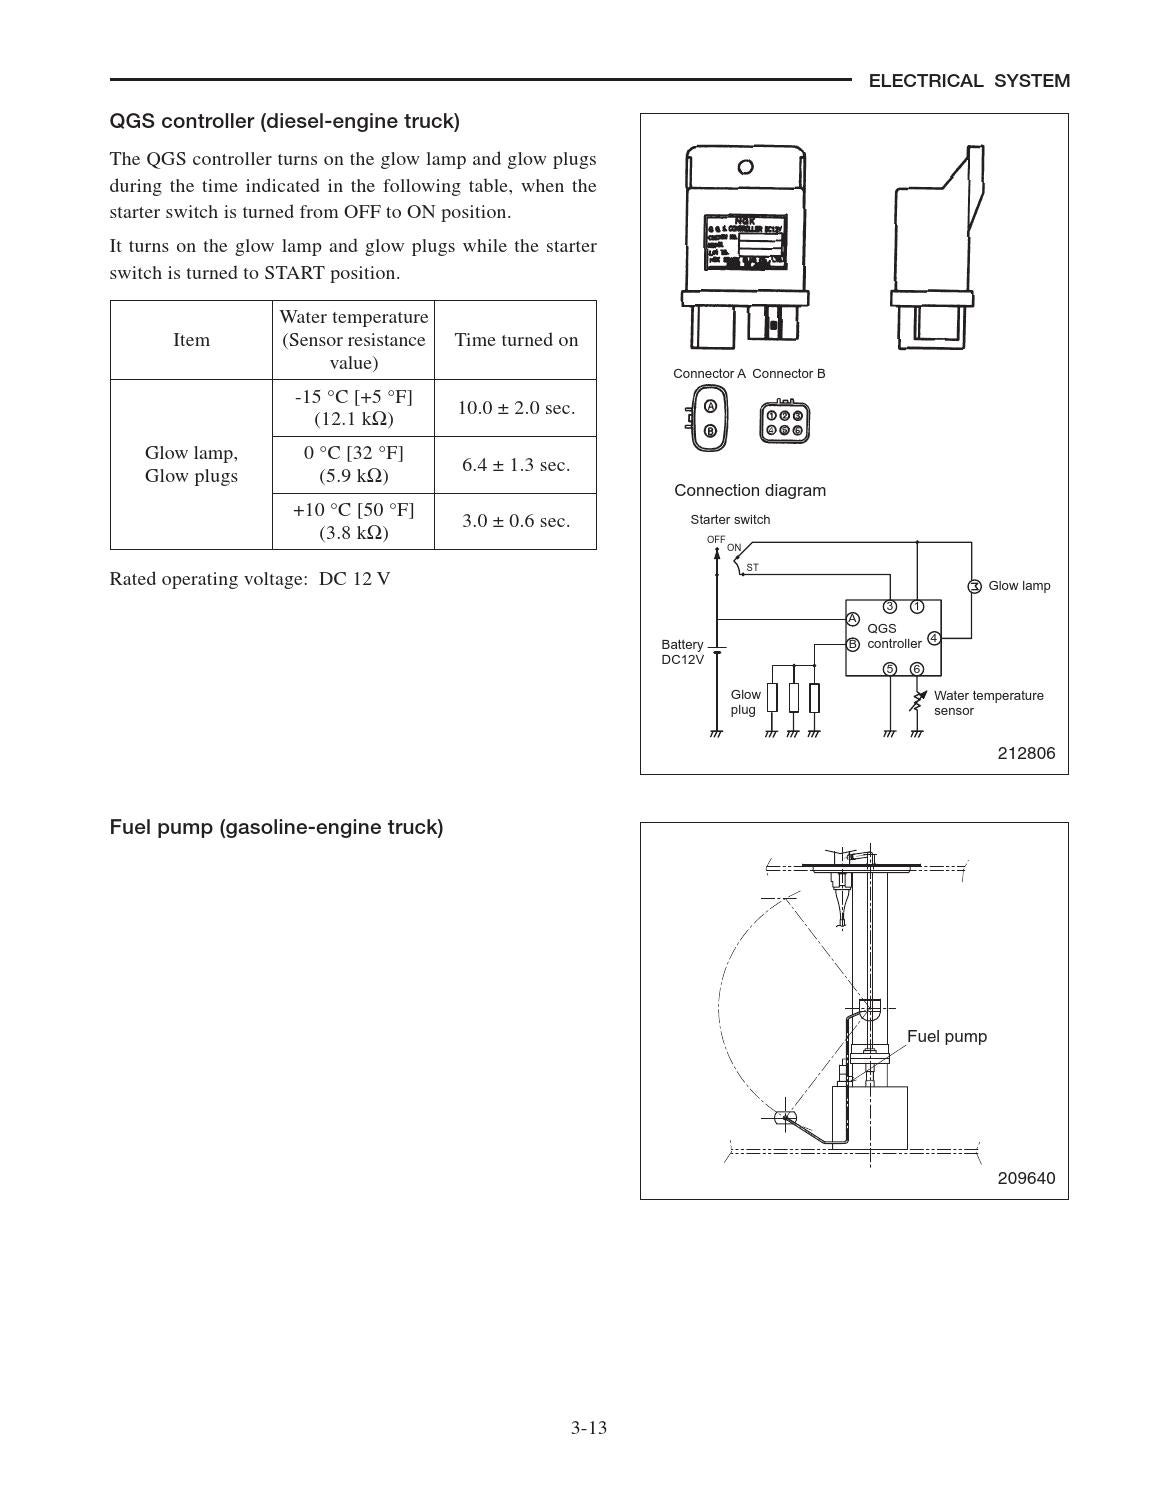 hight resolution of caterpillar ignition switch wiring diagram data wiring diagram cat fork lift ignition switch wiring diagram